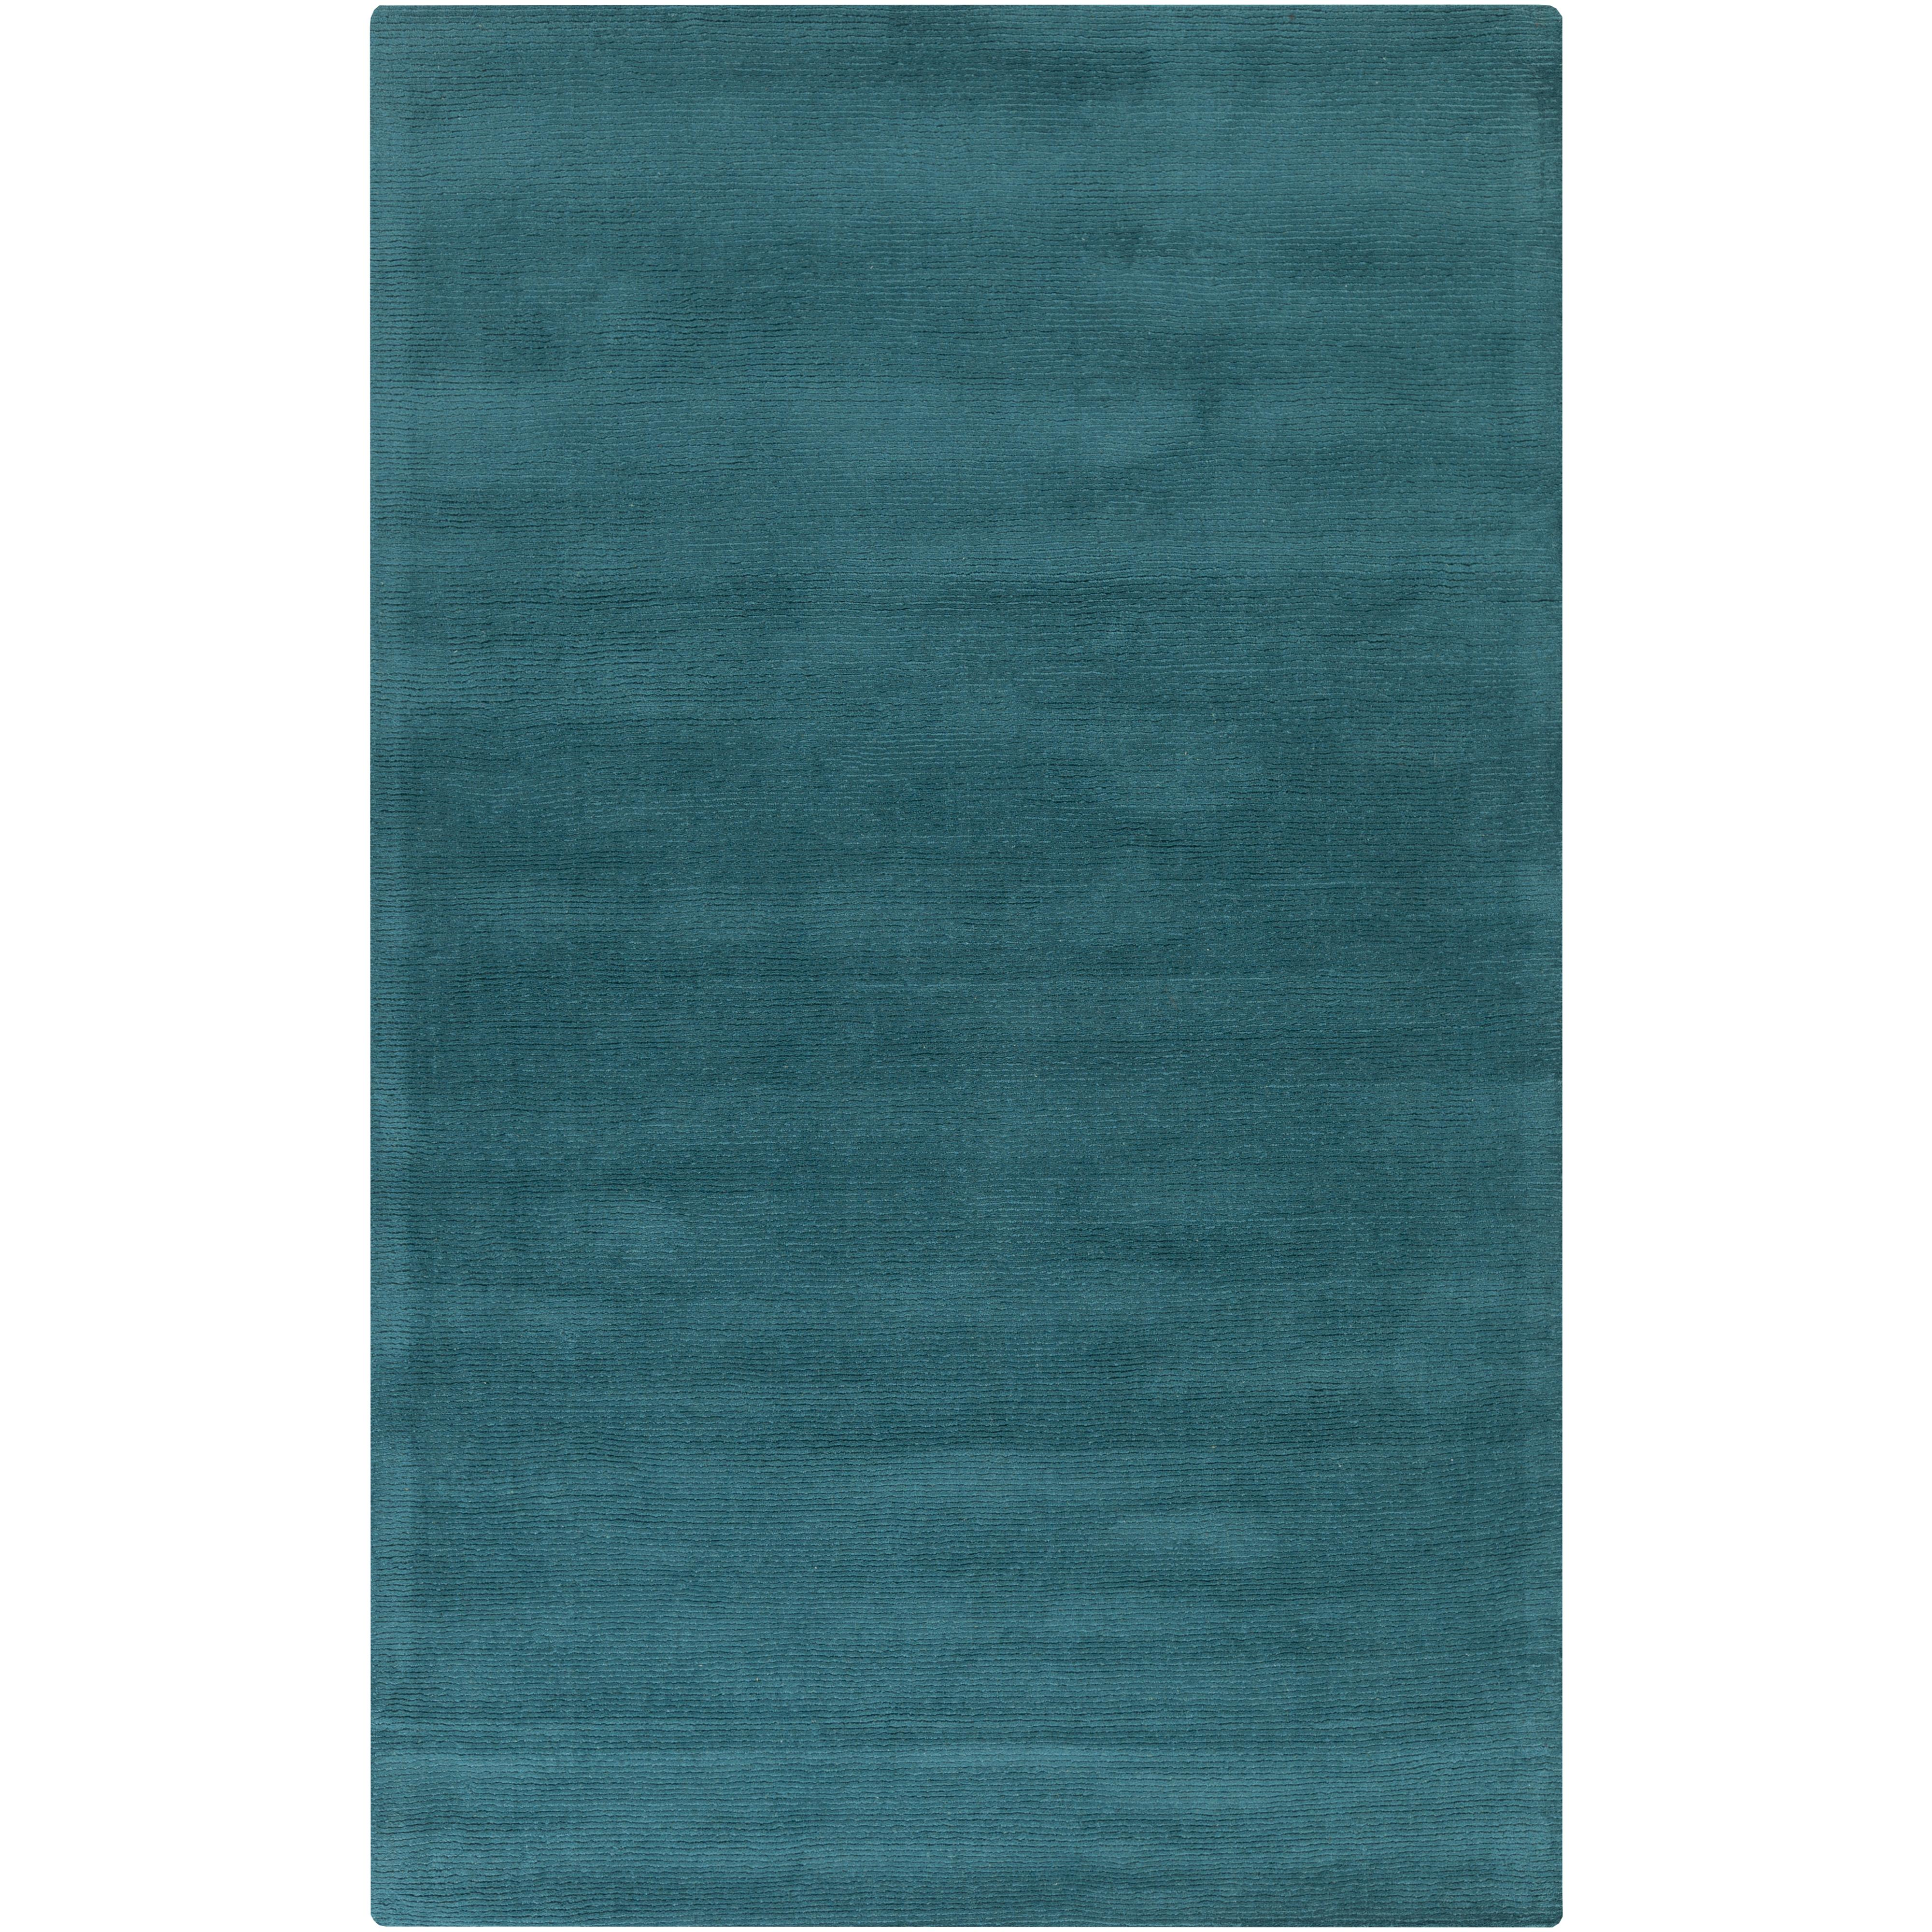 Surya Mystique 12' x 15' - Item Number: M5330-1215